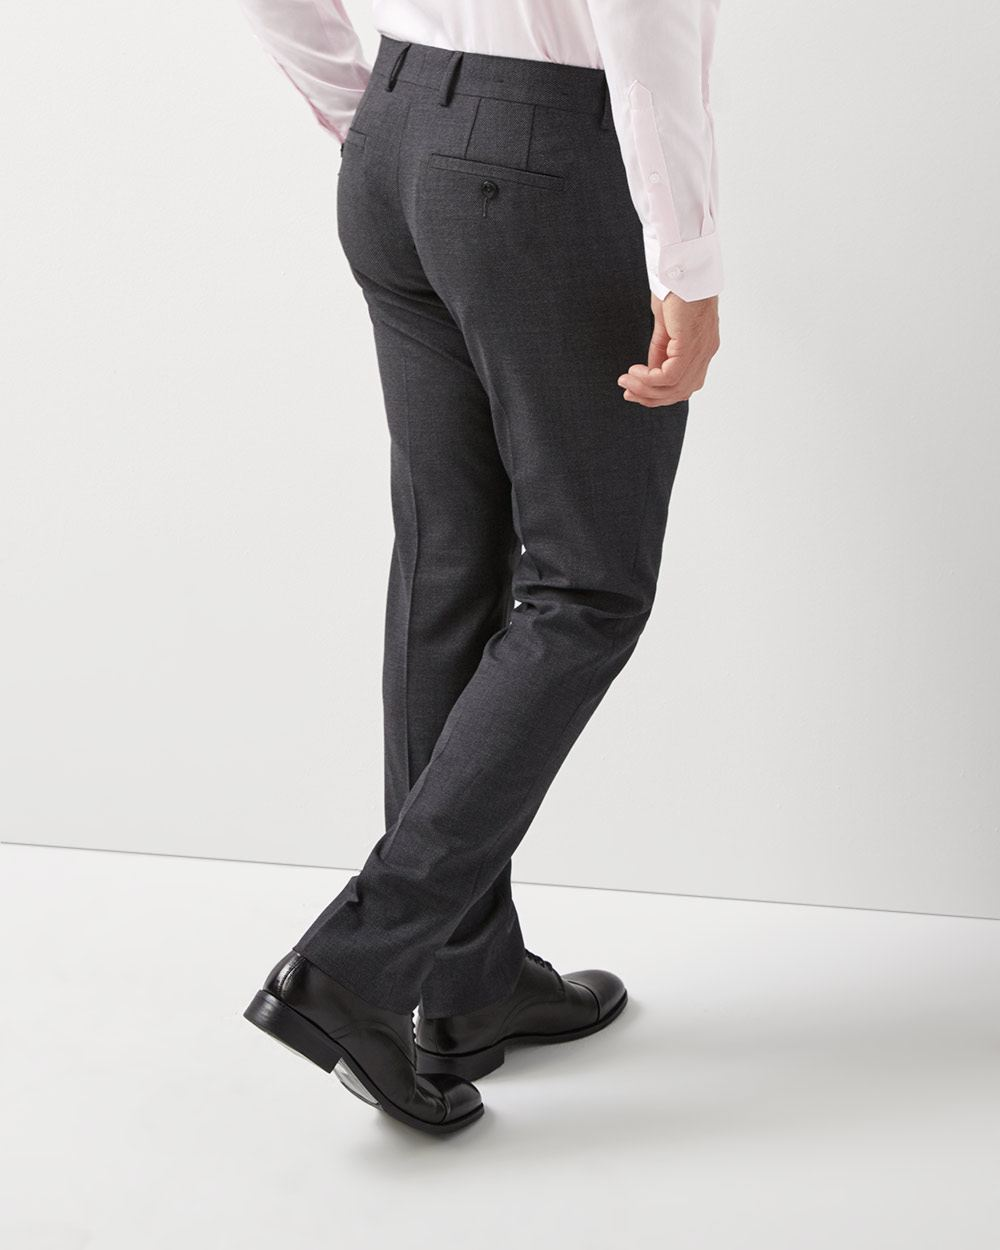 Slim Fit two-tone grey Traveler pant